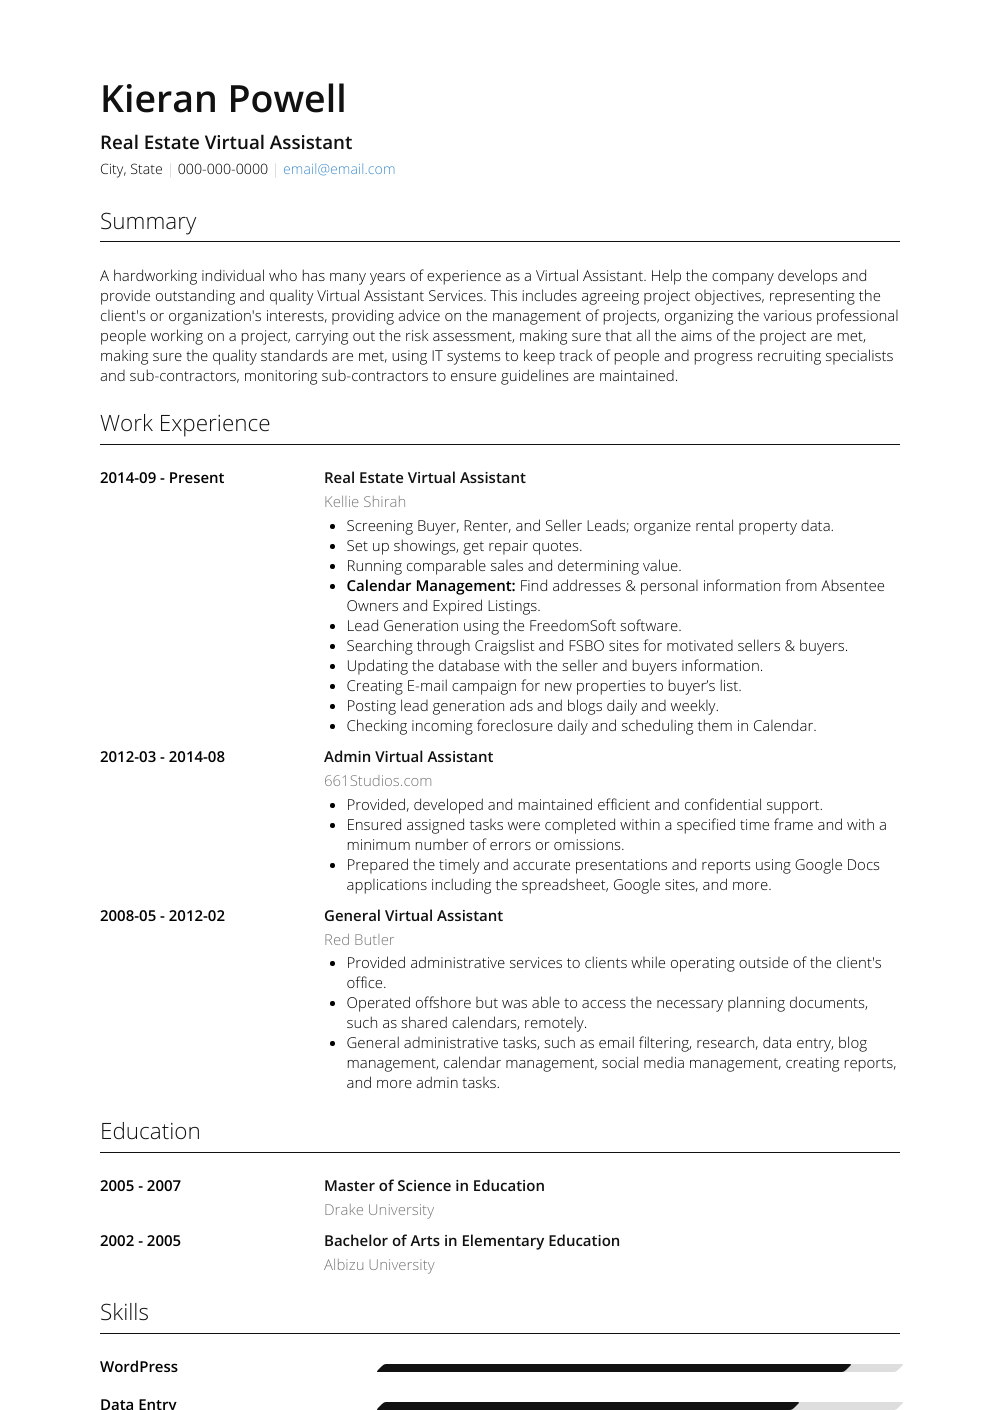 sample resume for virtual assistant with no experience